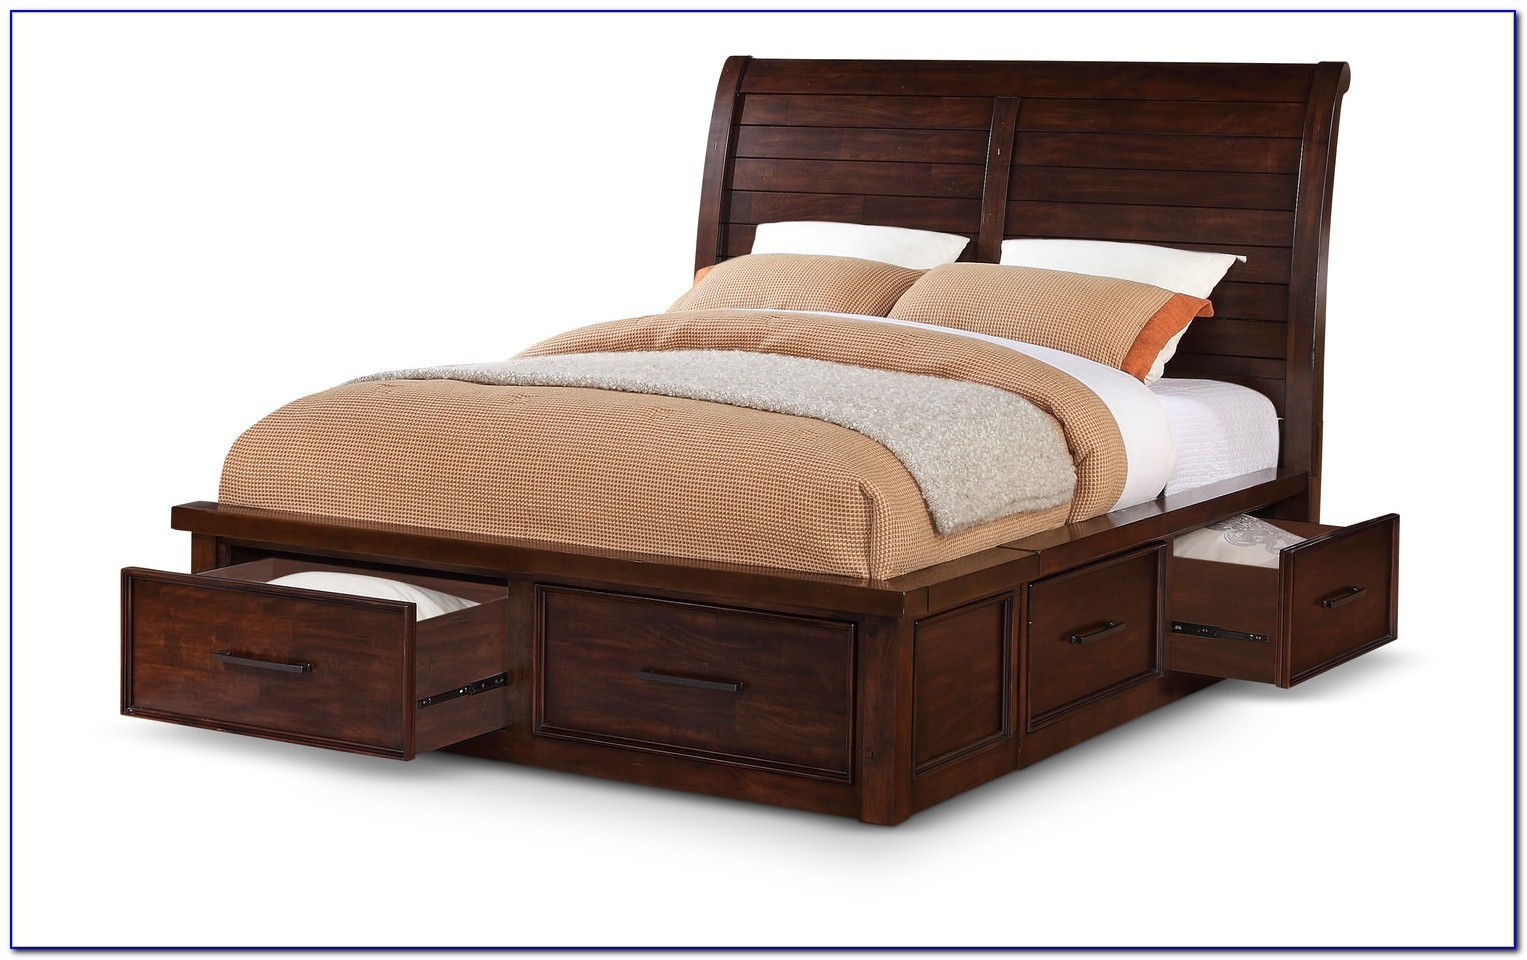 Sleigh Bed King Single